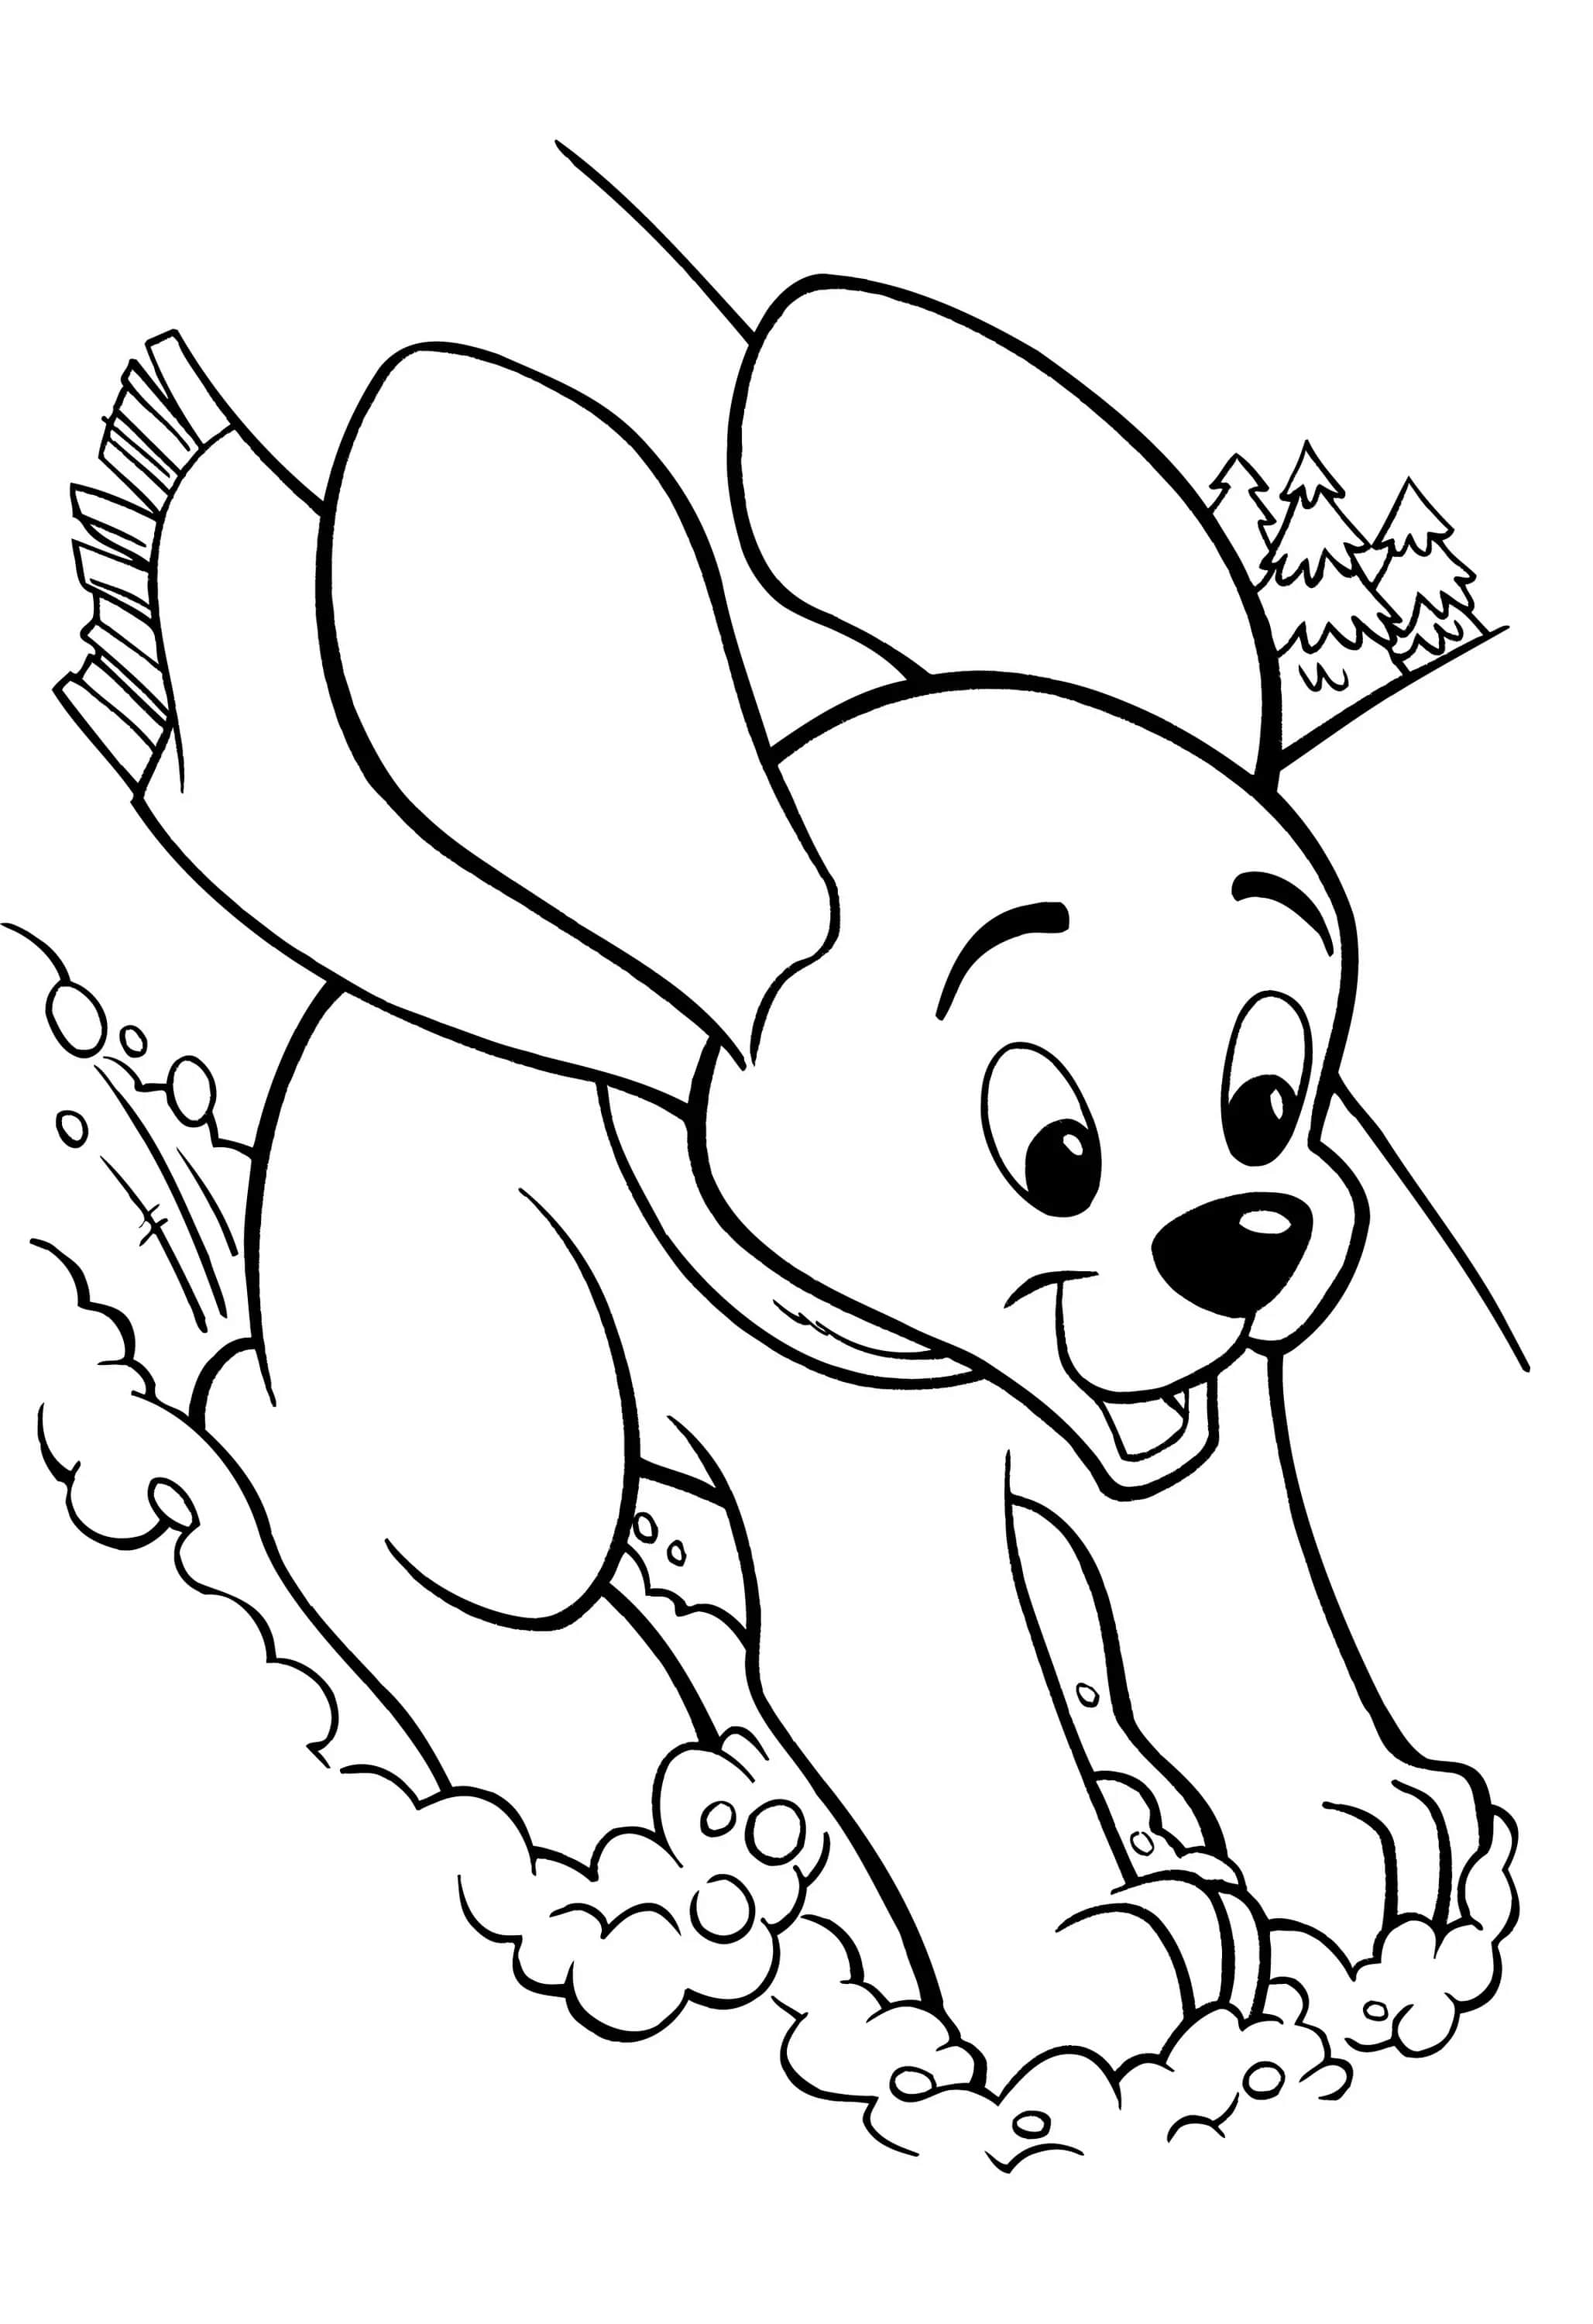 coloring pages of dogs printable dog coloring pages printable coloring pages of dogs for of printable dogs pages coloring